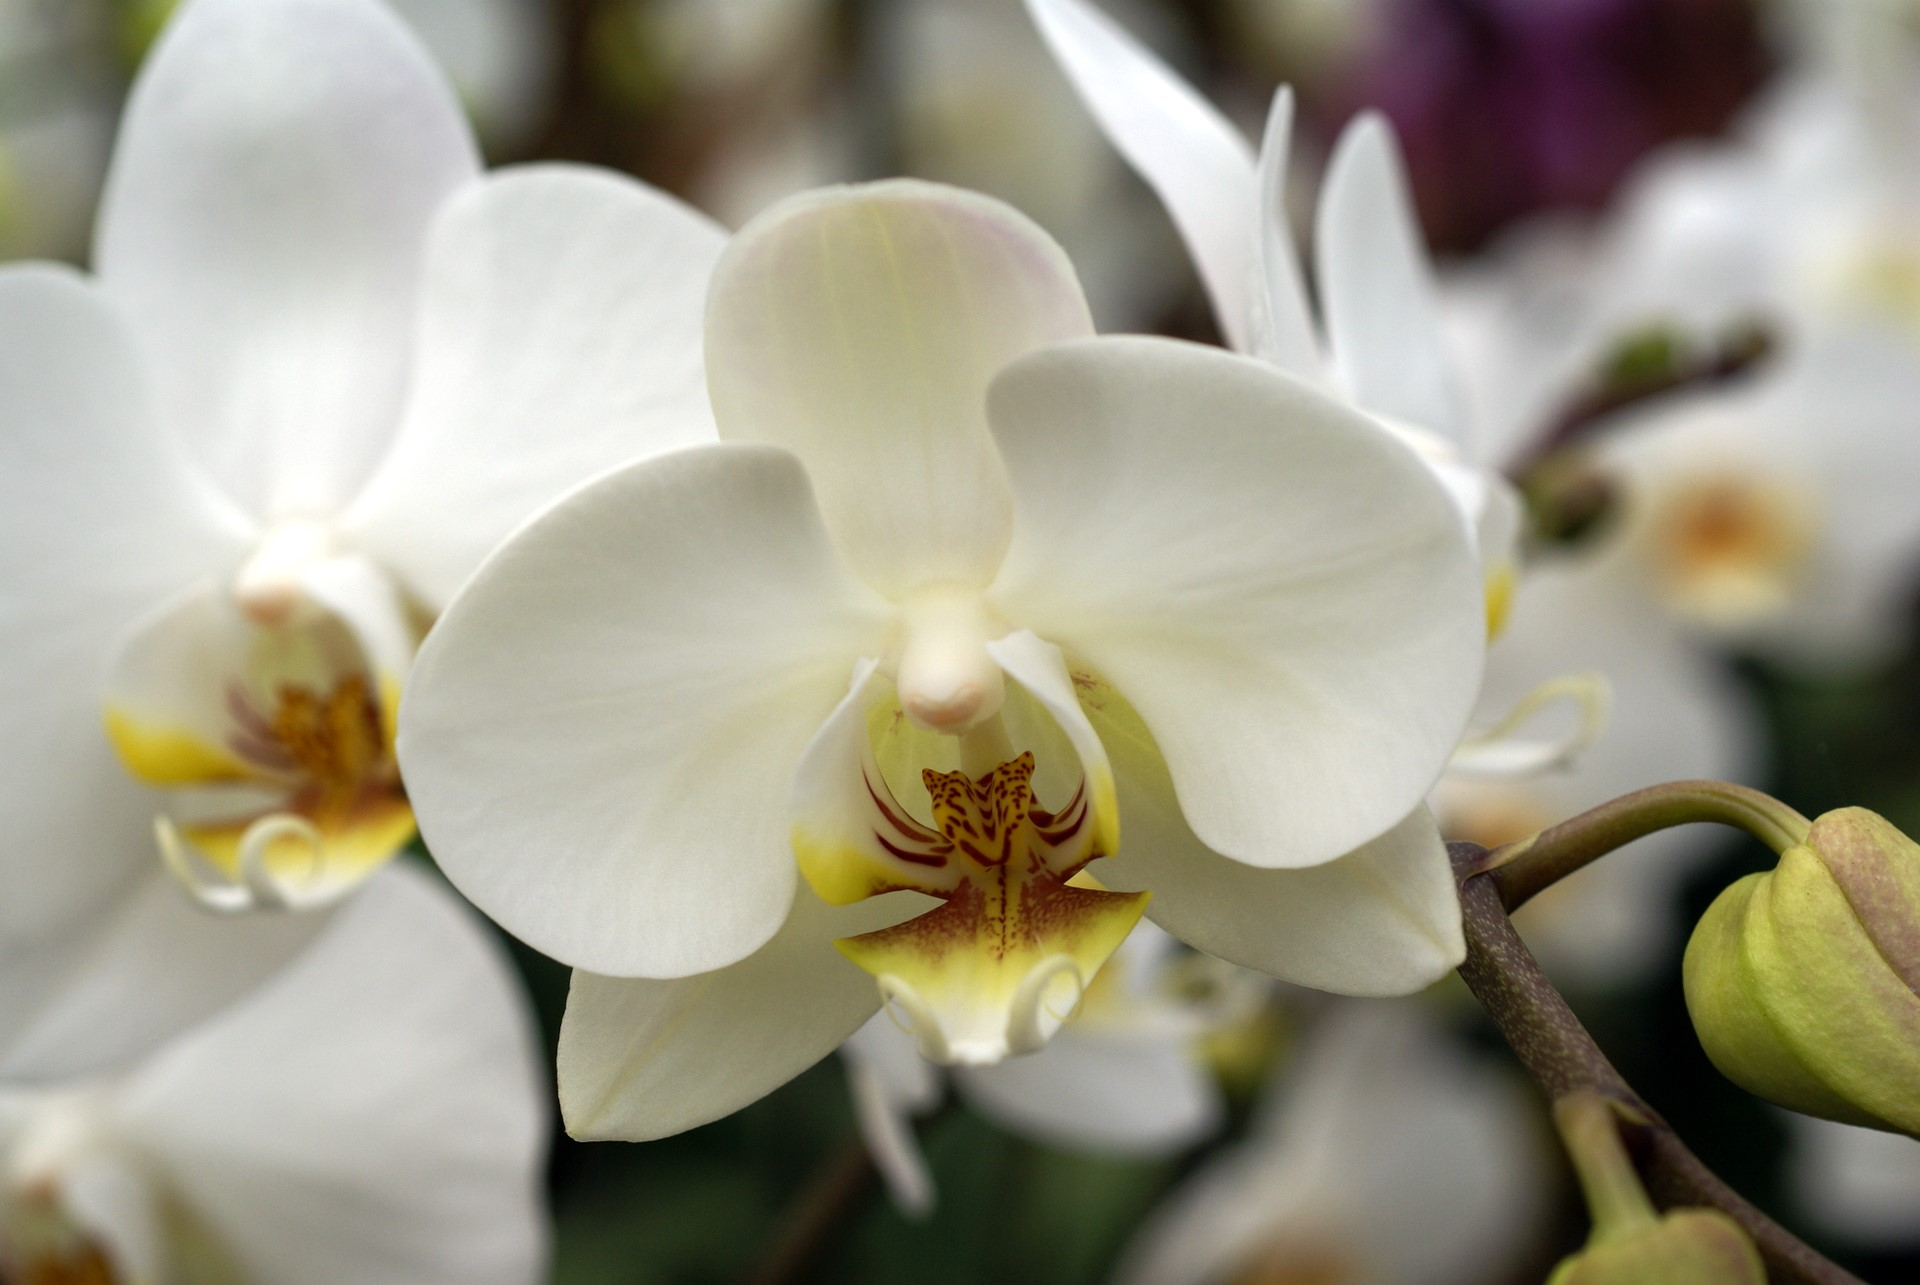 How To Care For Orchids Flower  InspirationSeekcom